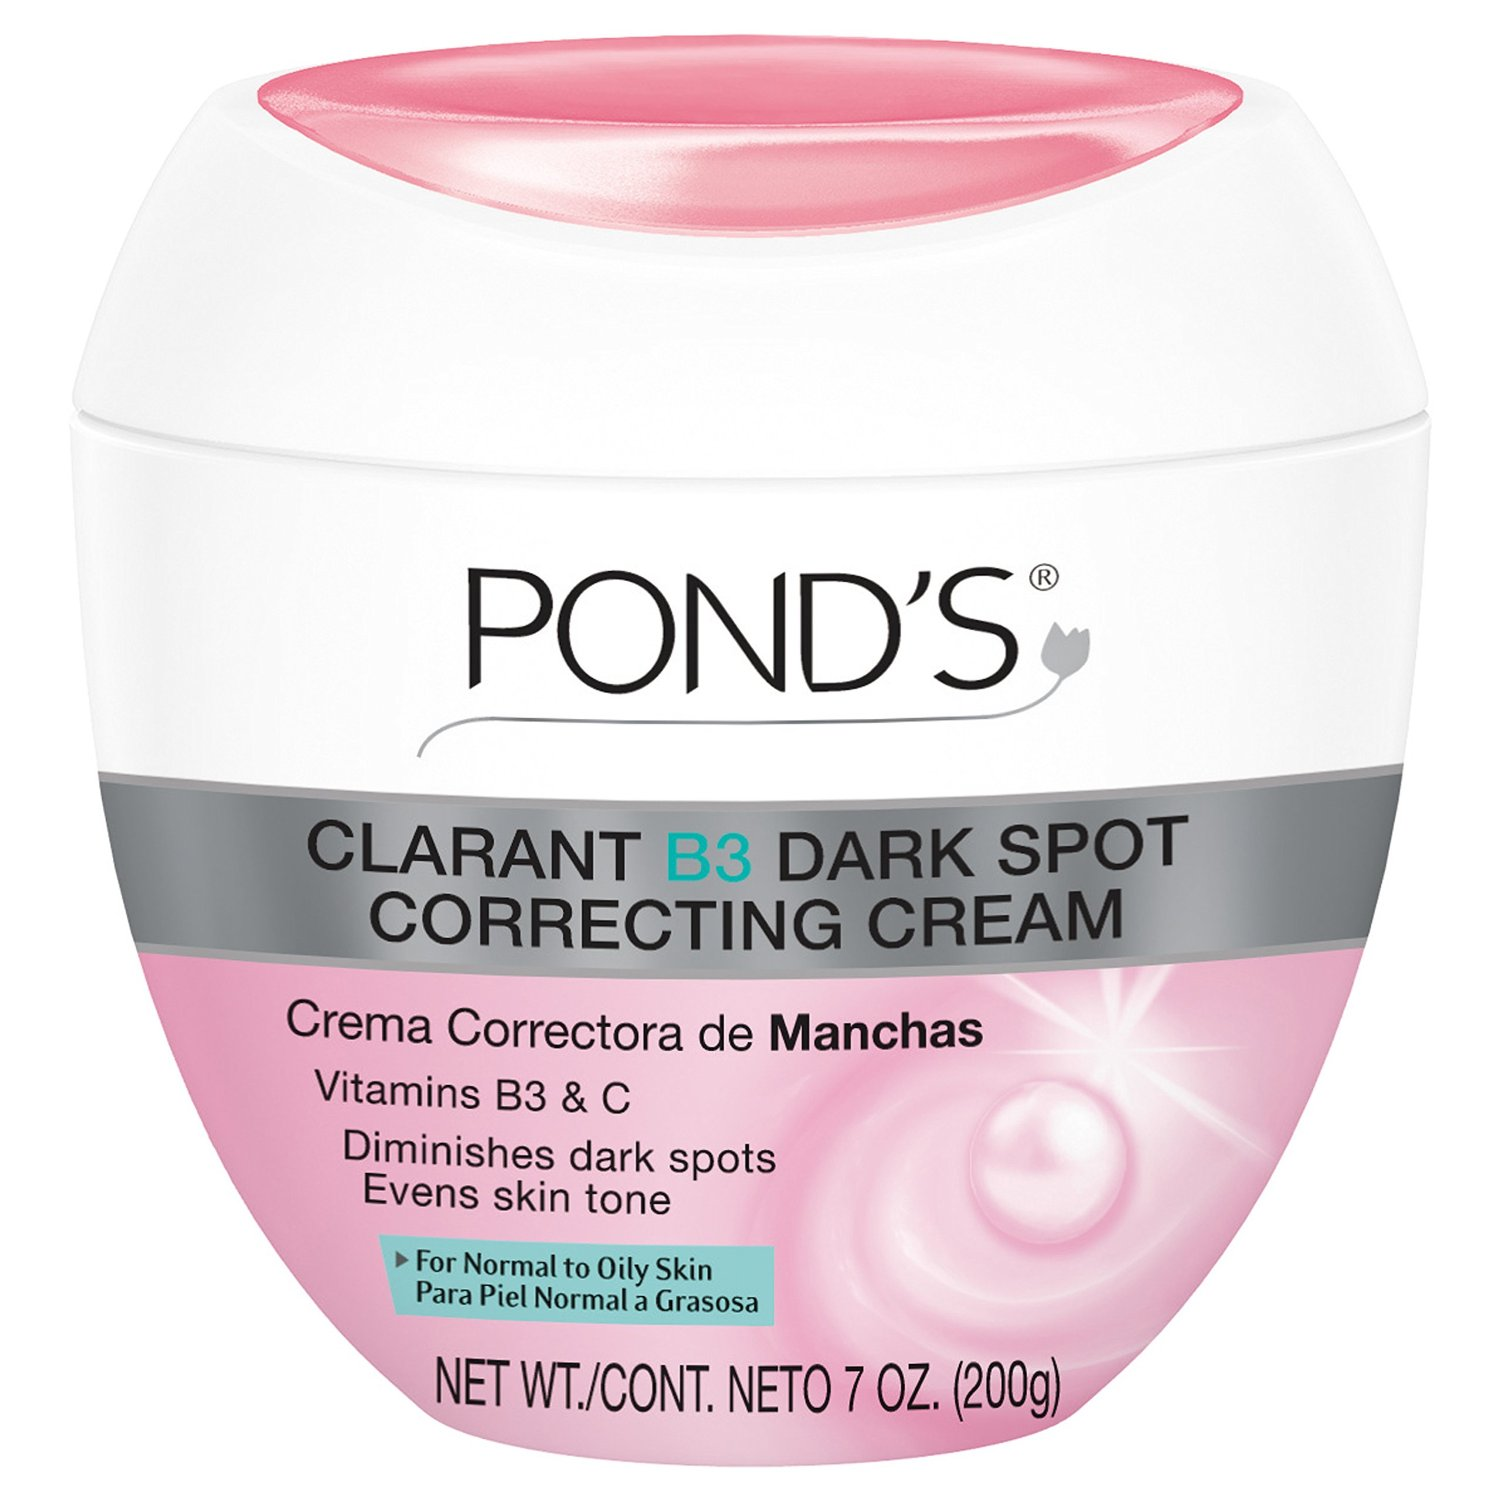 ponds moisturizer for oily skin